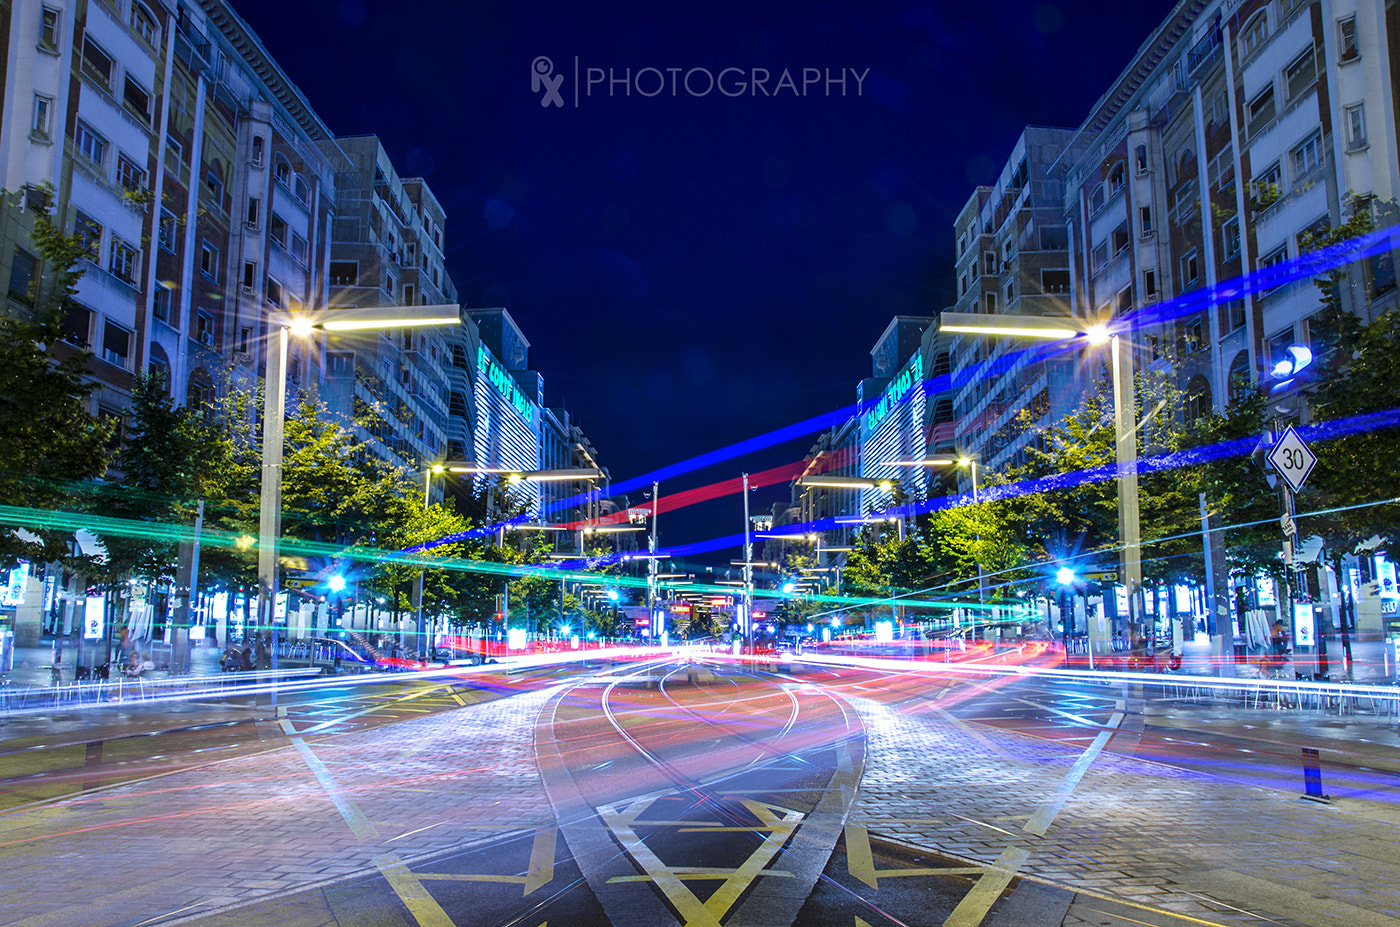 Photograph Crossing Lines by Rui Xu on 500px